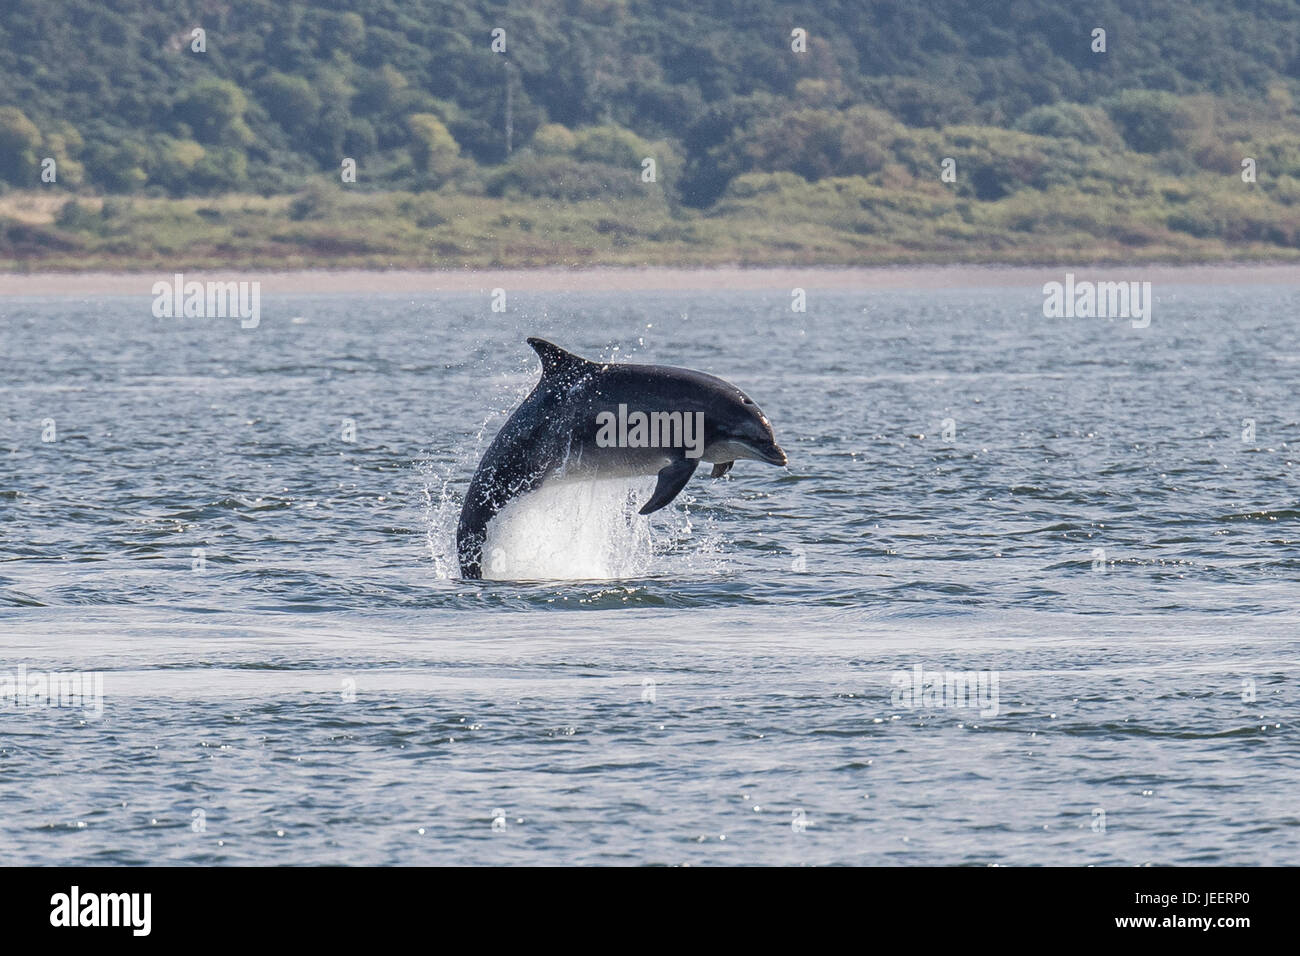 Common Bottlenose Dolphin, breaching off Chanonry Point, Black Isle, Moray Firth, Scotland, United Kingdom - Stock Image